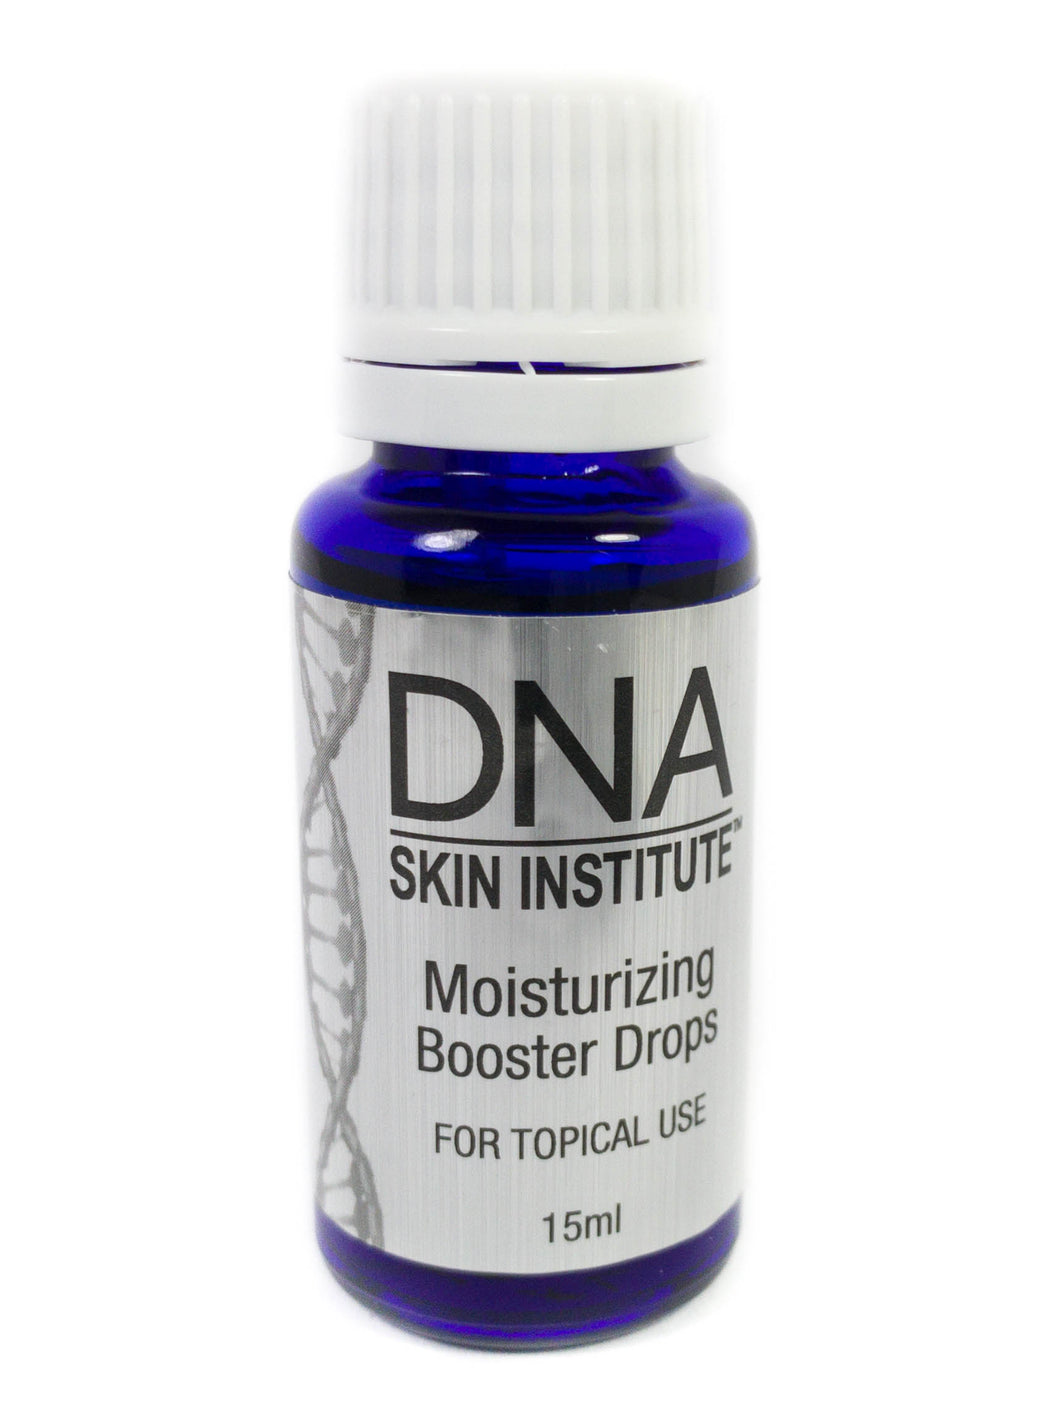 Moisturizing Booster Drops